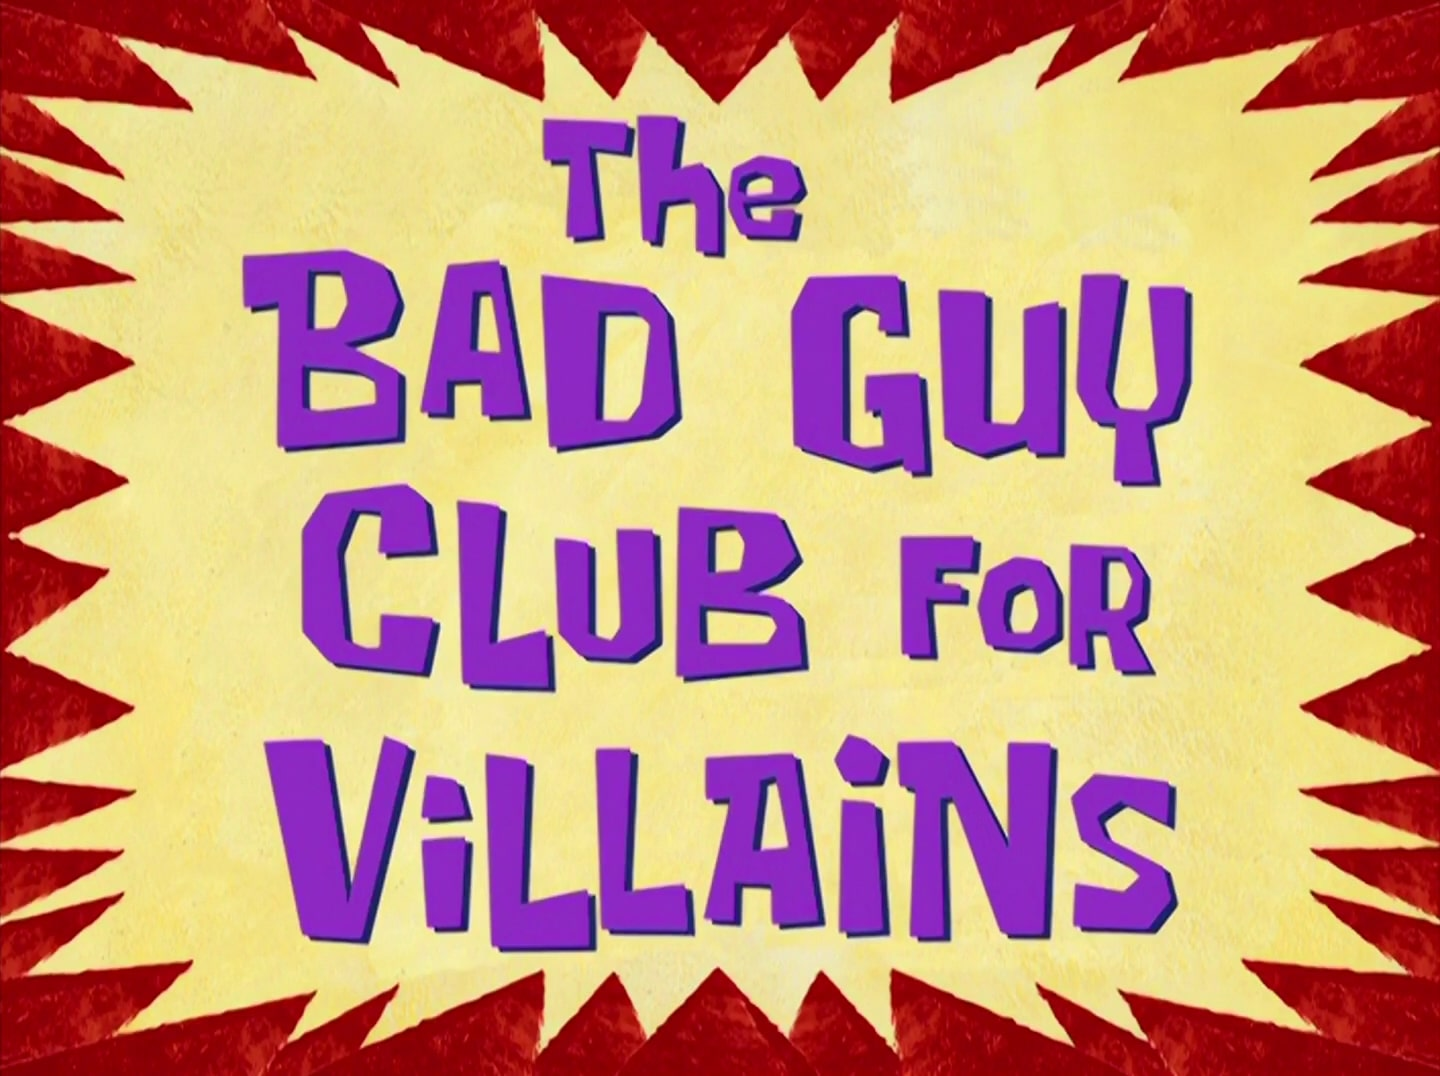 File:The Bad Guy Club for Villains.jpg